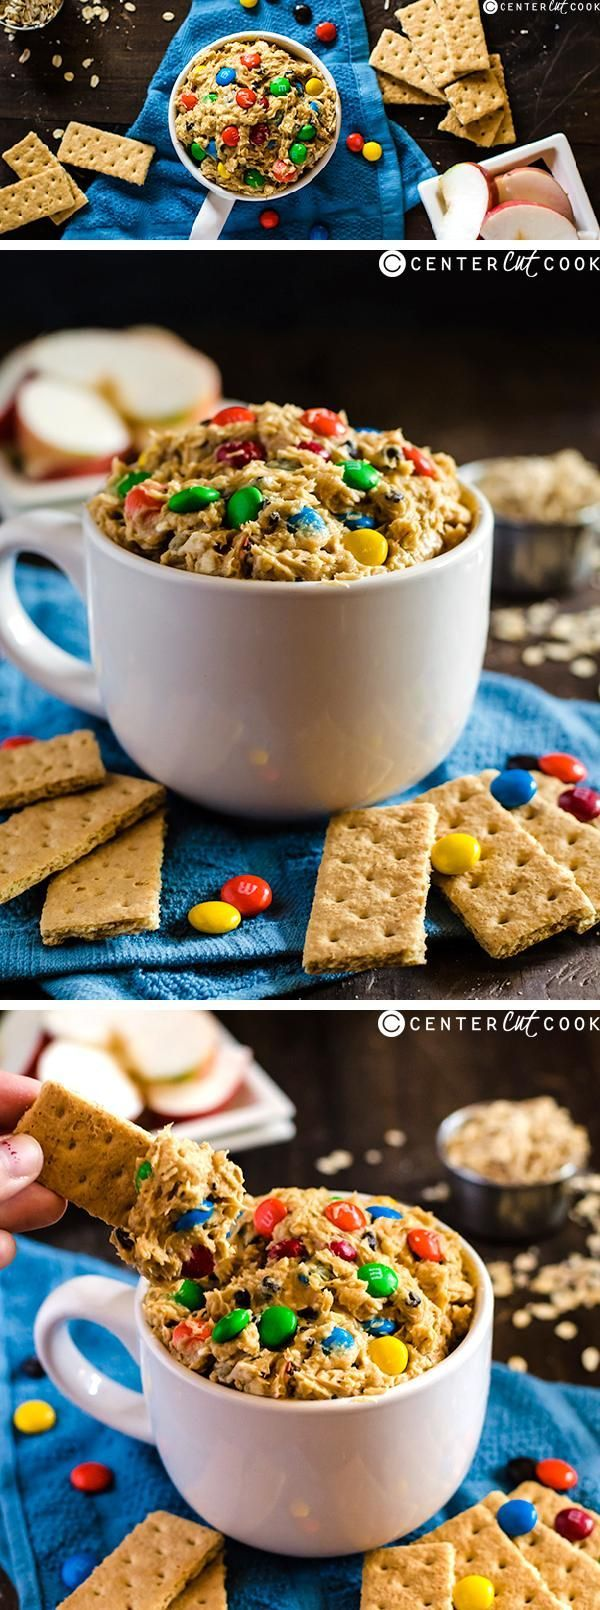 MONSTER COOKIE DOUGH DIP will be a new favorite for your kids! Perfect for parties and using up any leftover candy. This quick and easy eggless cookie dough dip is guaranteed to impress everyone!